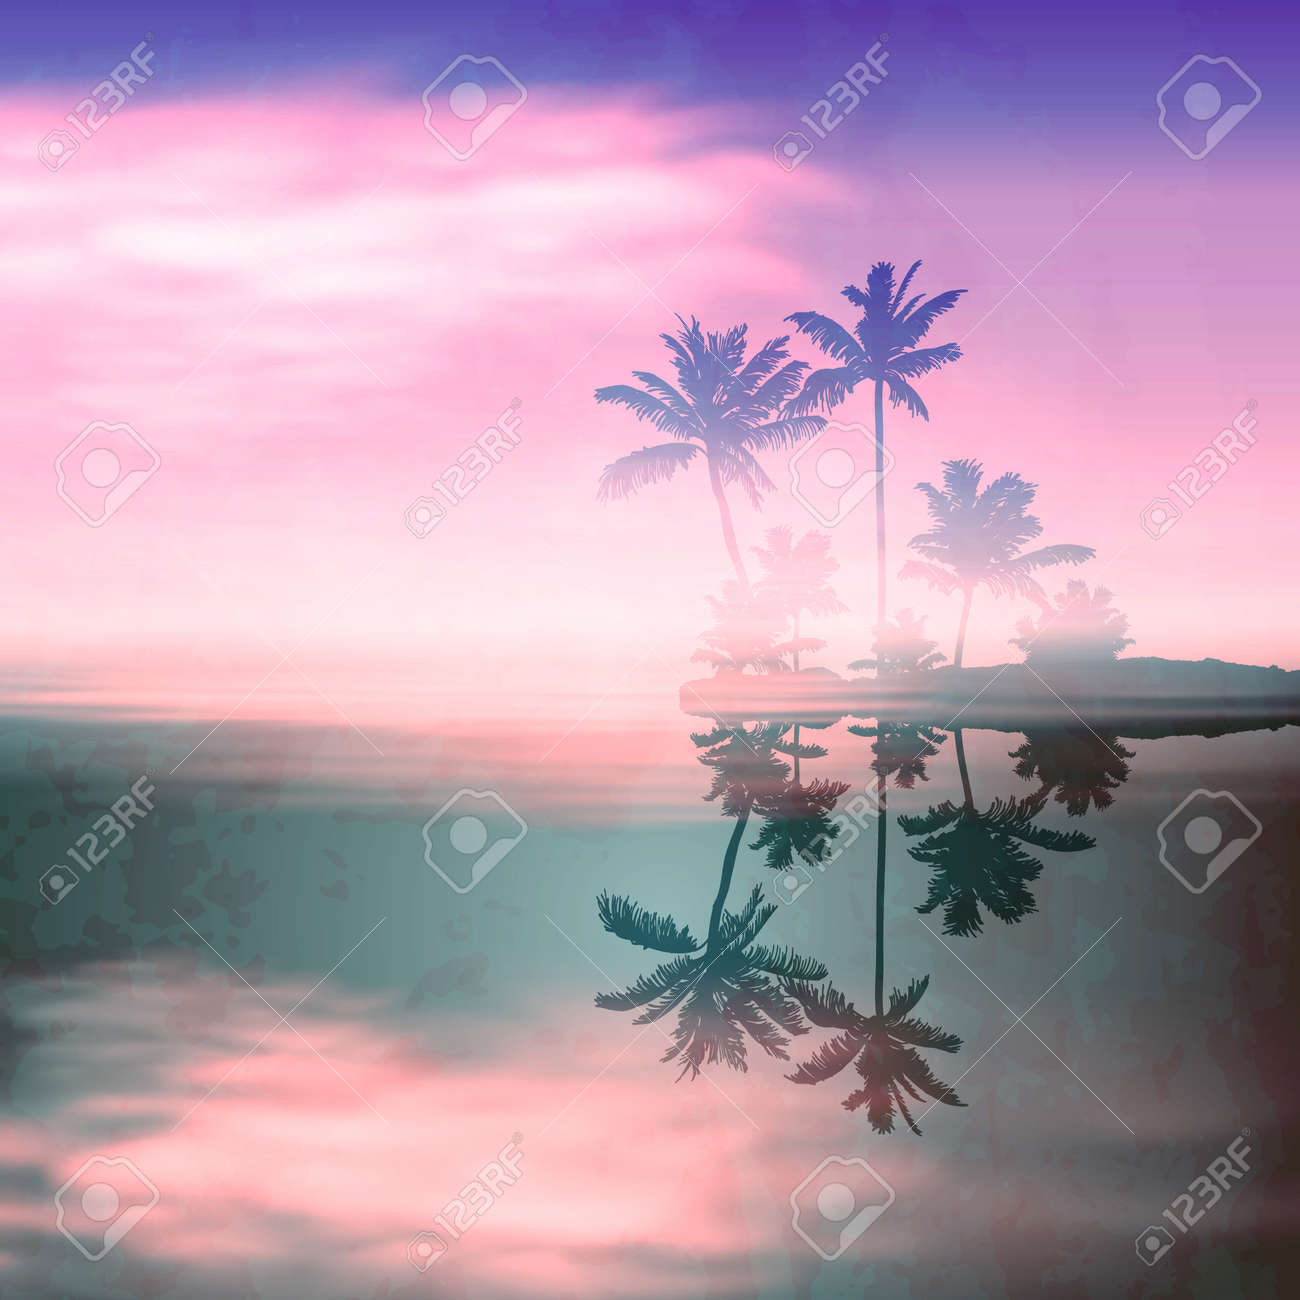 Sea sunset with island and palm trees. Retro style with old textured paper. - 29186040